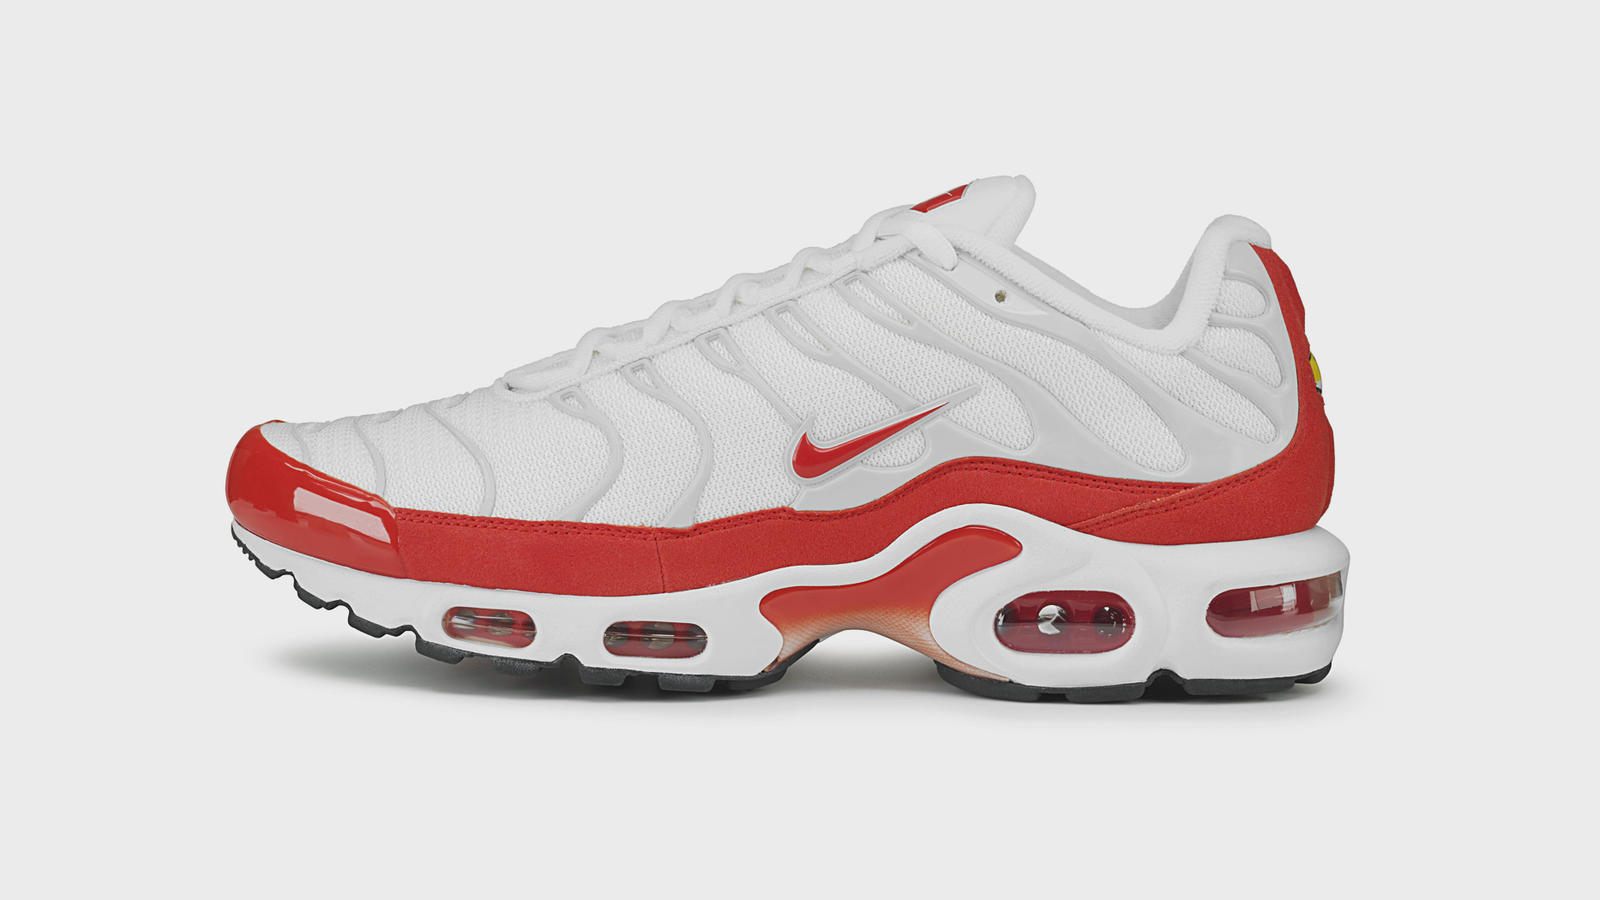 hot sale online bf7cd 66755 The Untold Story of the Nike Air Max Plus 22